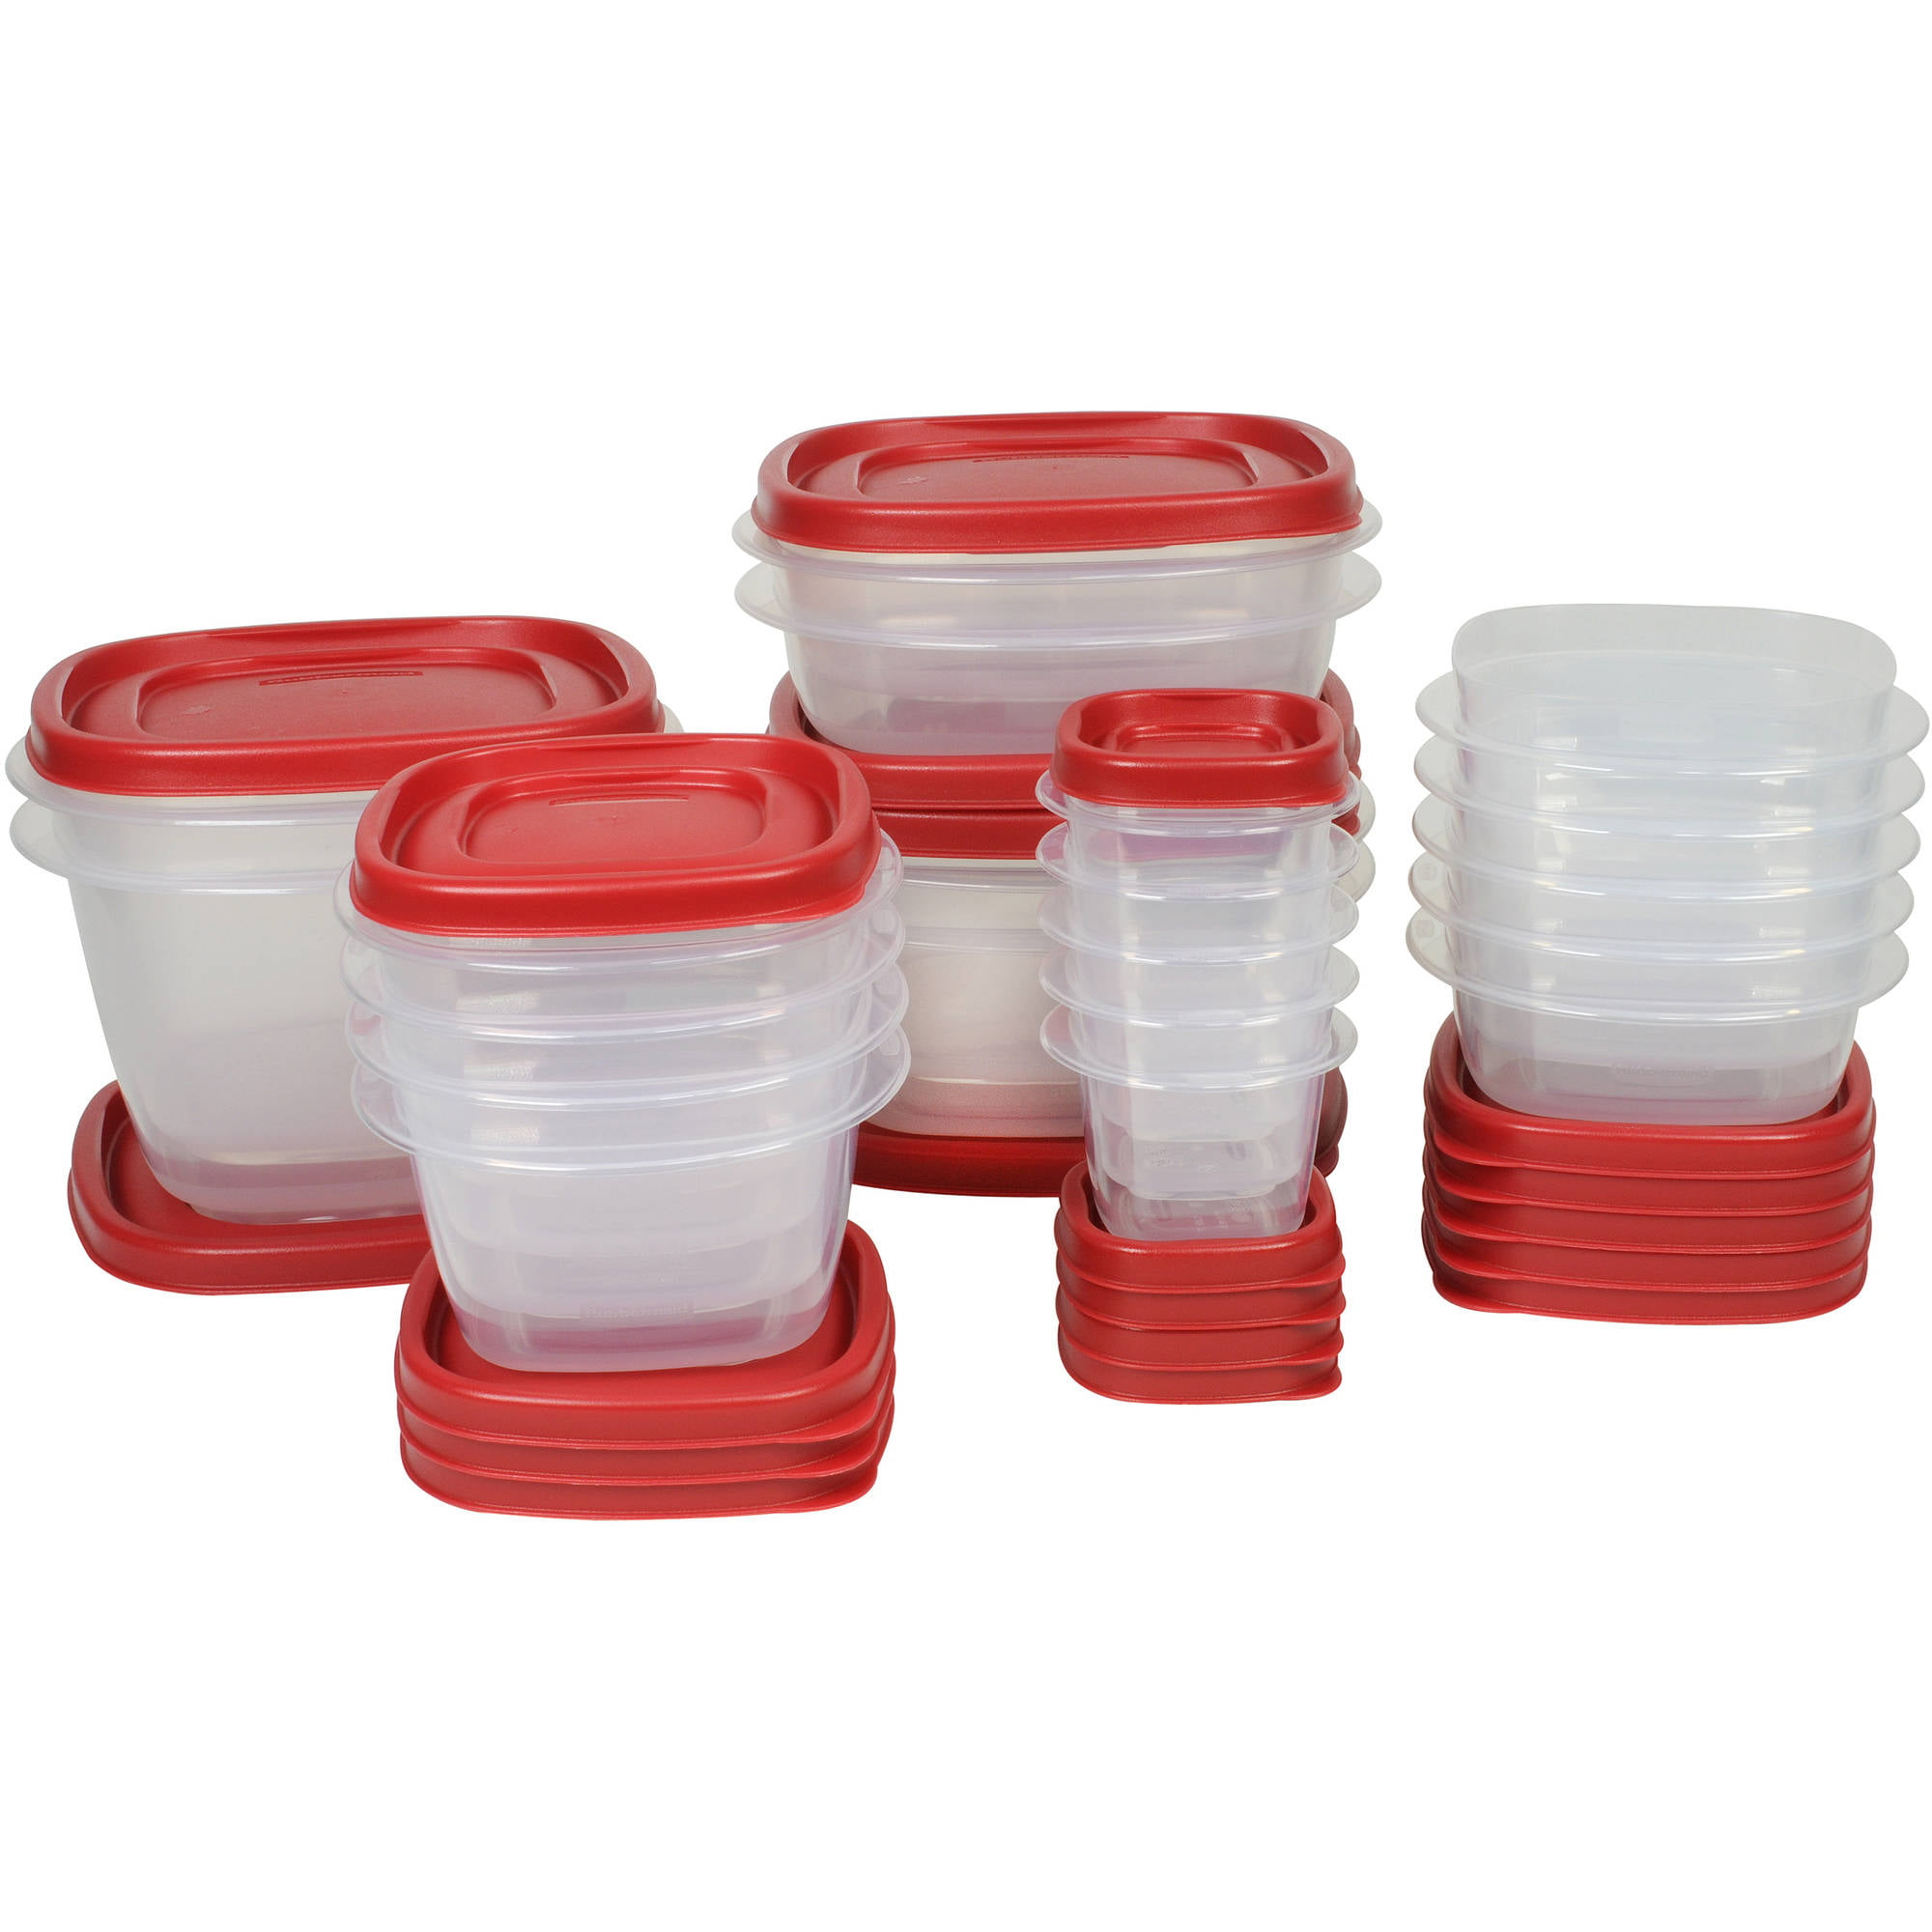 Mainstays Never Lost 30 Oz Food Storage Containers with Lids 4